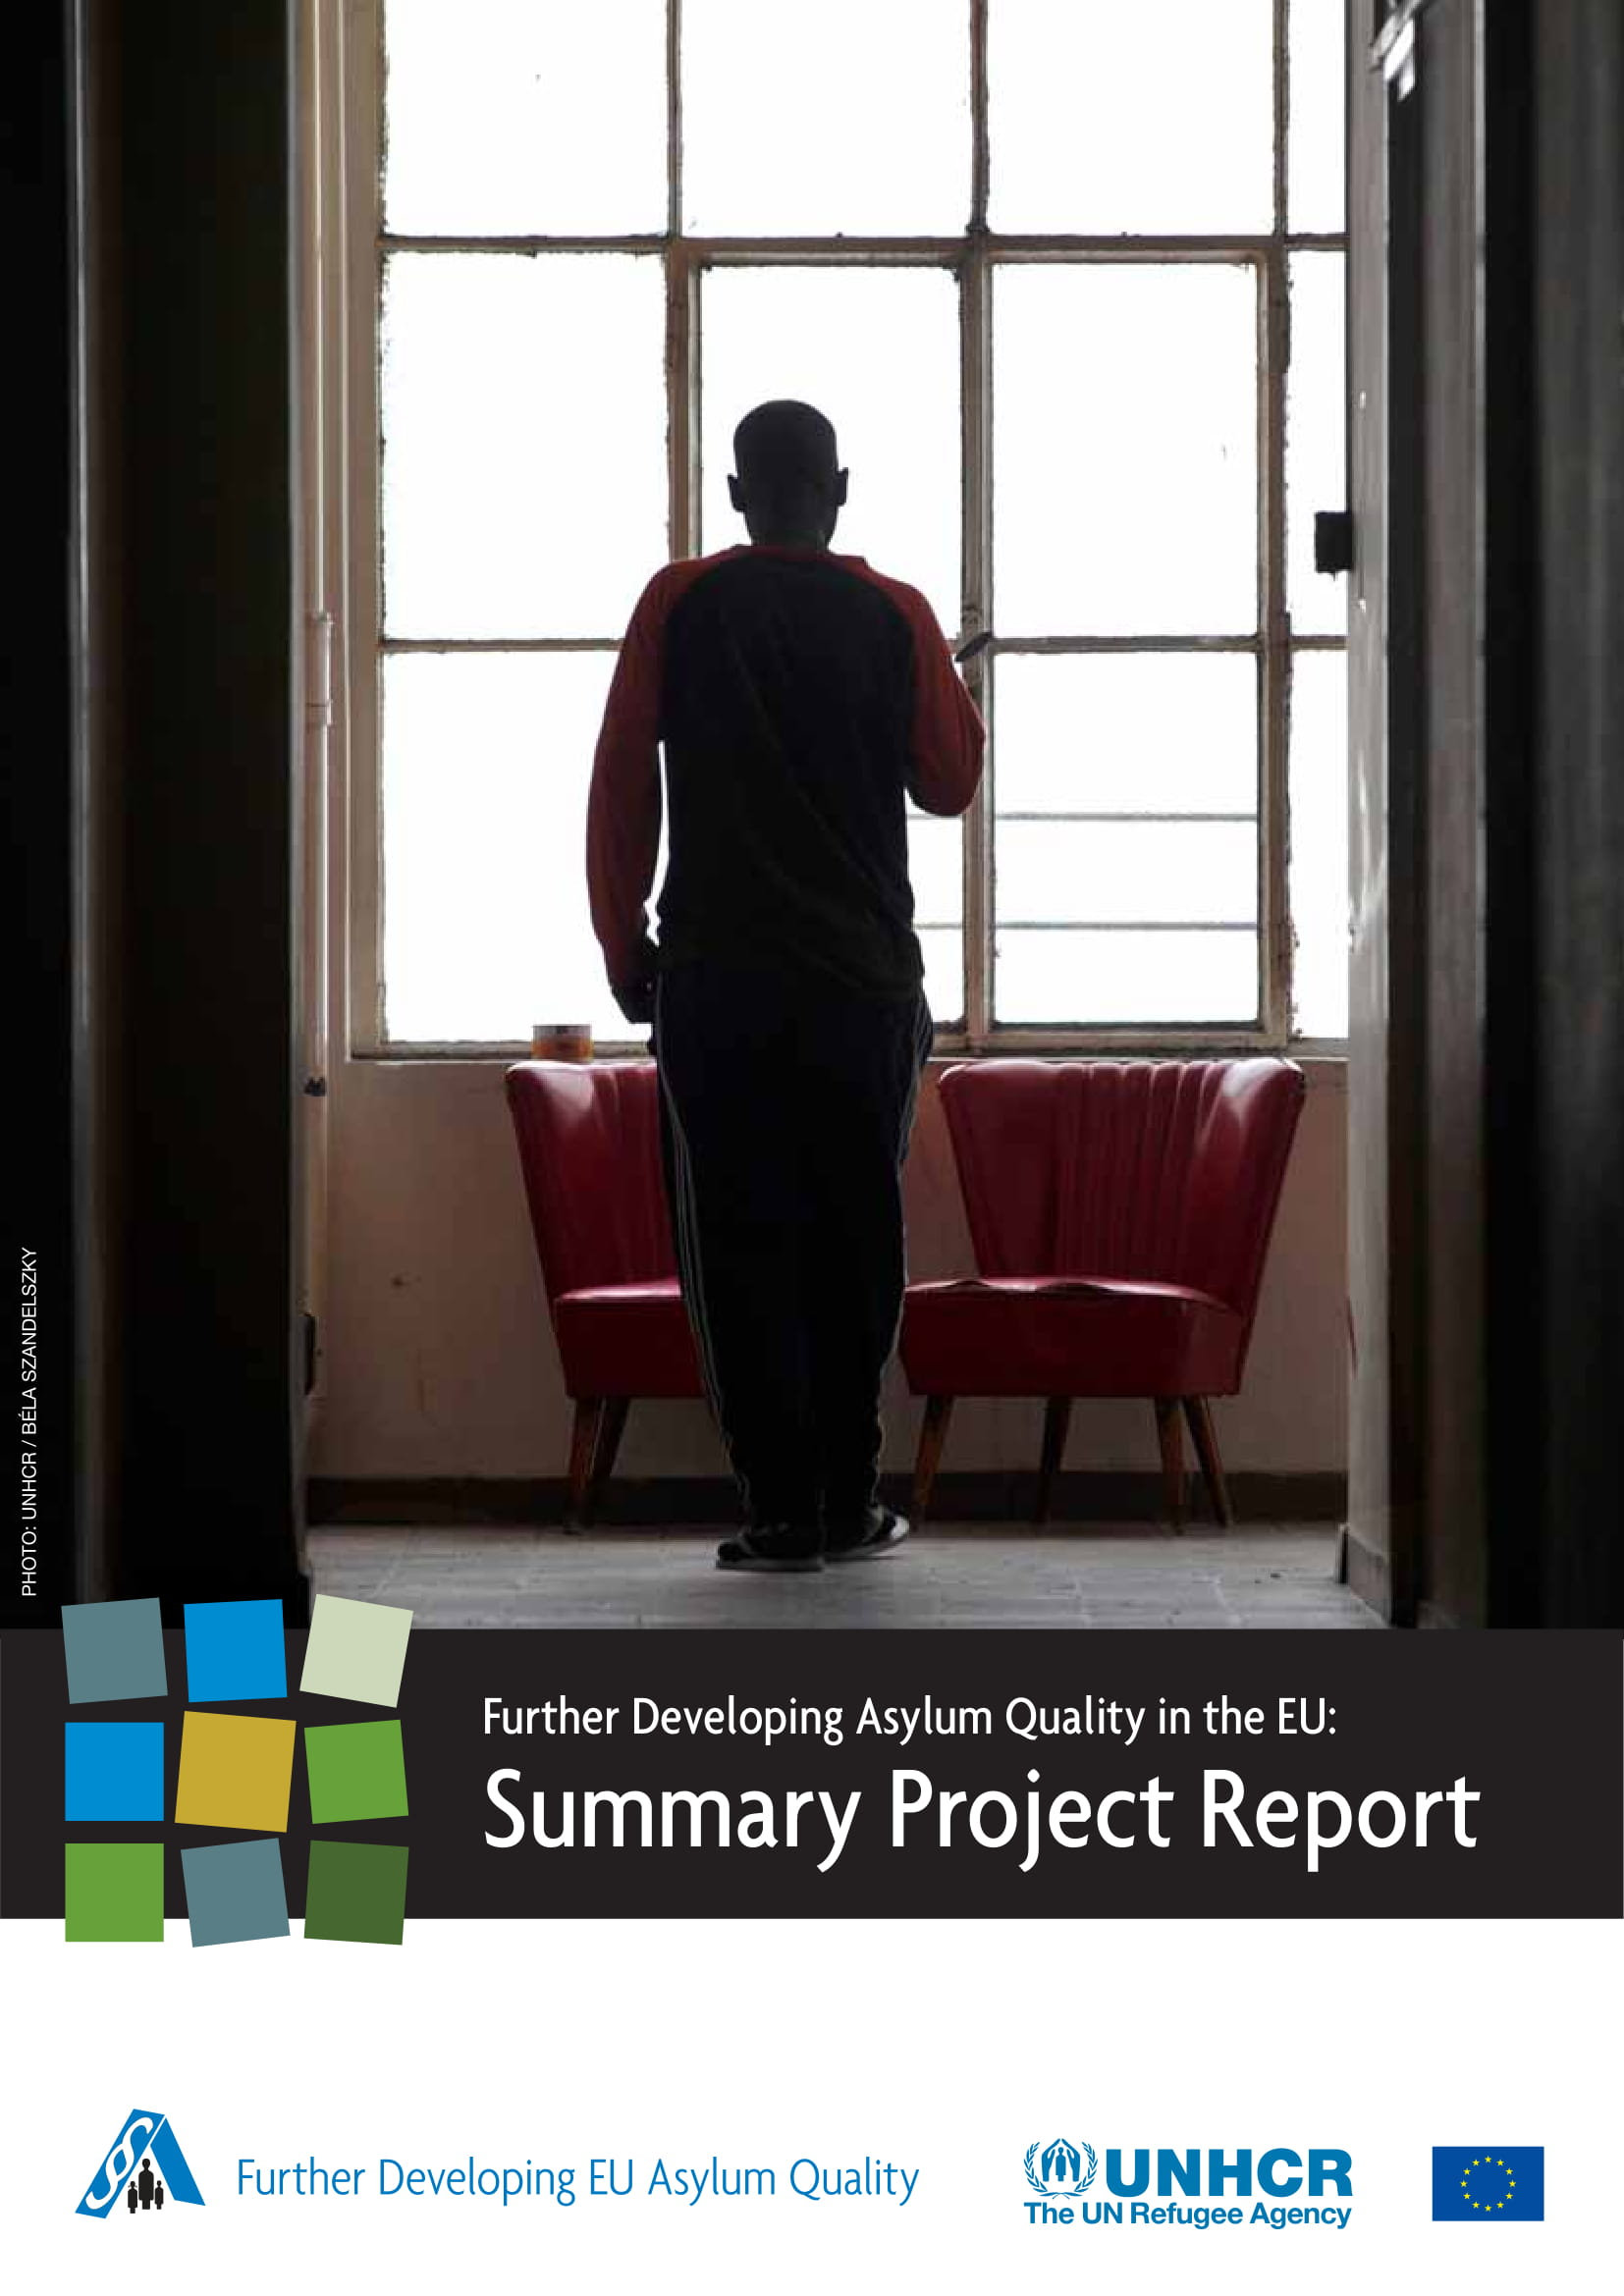 summary project report example